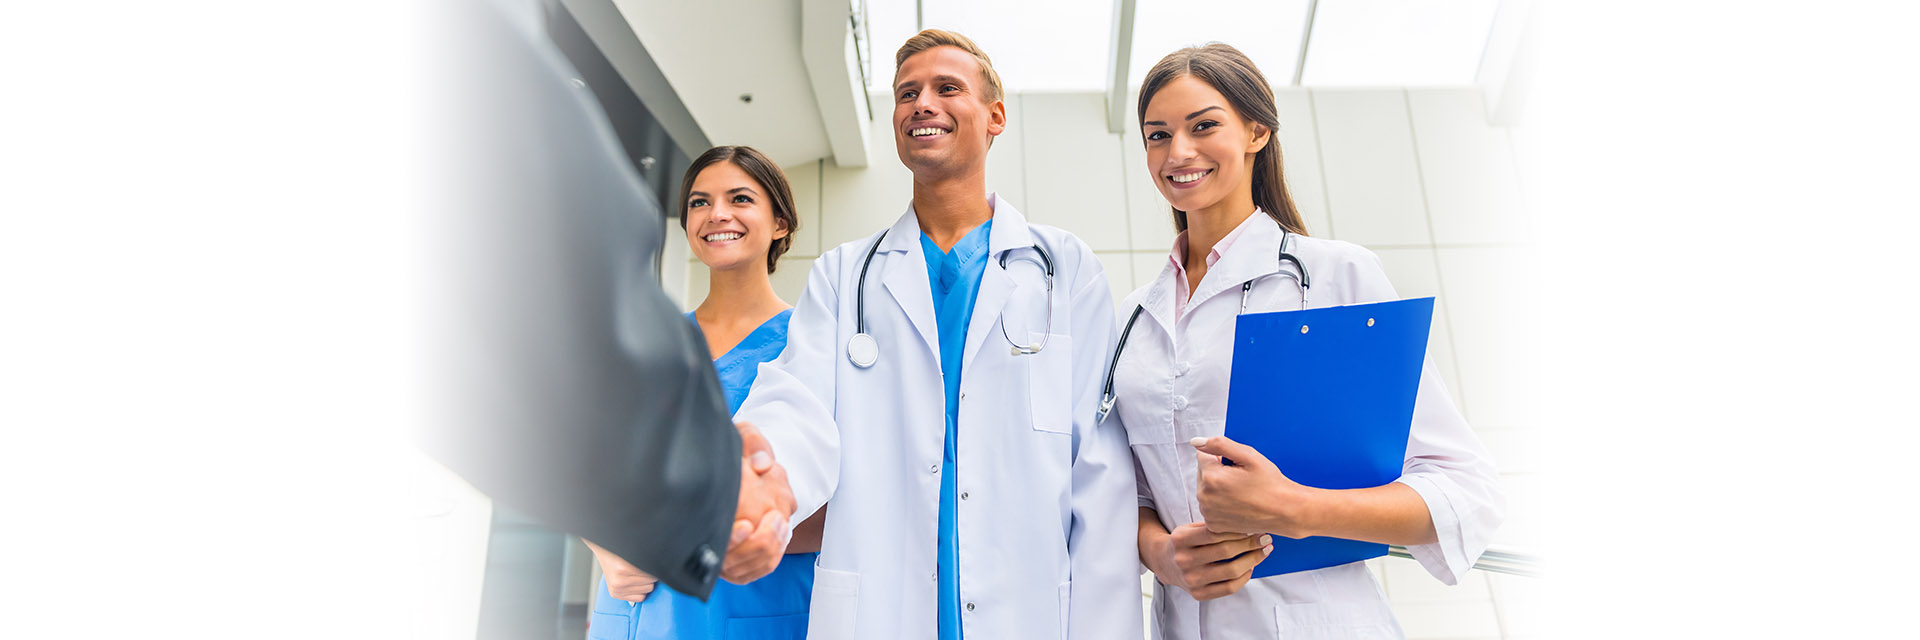 Group of healthcare workers greeting business person